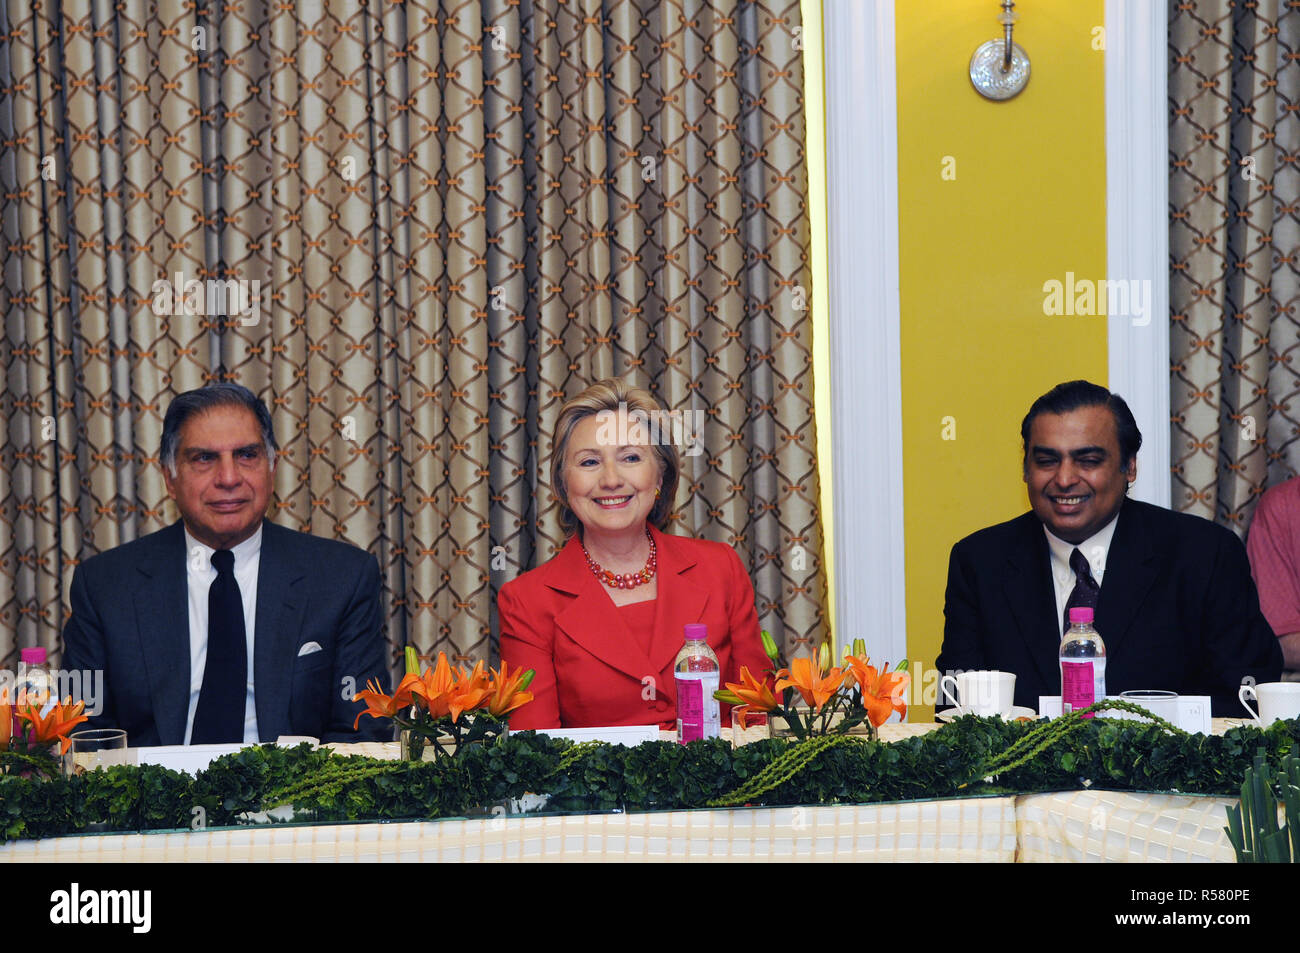 2009 - U.S. Secretary of State Hillary Rodham Clinton meets with India's business leaders. From left to right: Ratan Tata, Charmain of the Tata Group; Secretary Clinton; Mukesh Ambani, Chairman and Managing Director of Reliance Industries - Stock Image